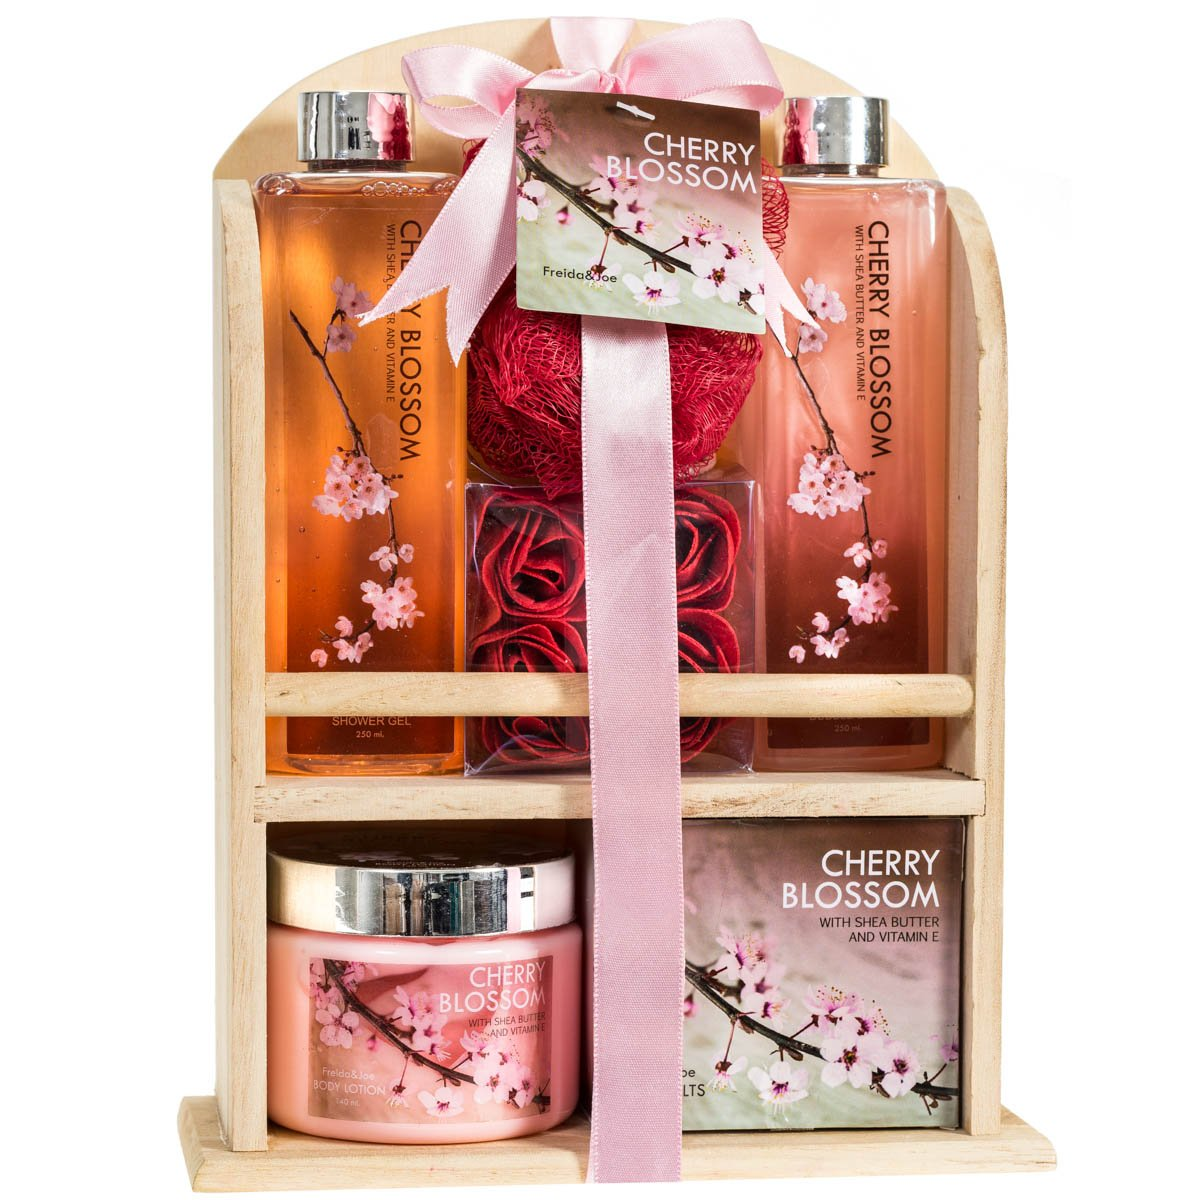 Cherry Blossom Spa Gift Set in a Natural Wood Caddy Freida & Joe FJ-41